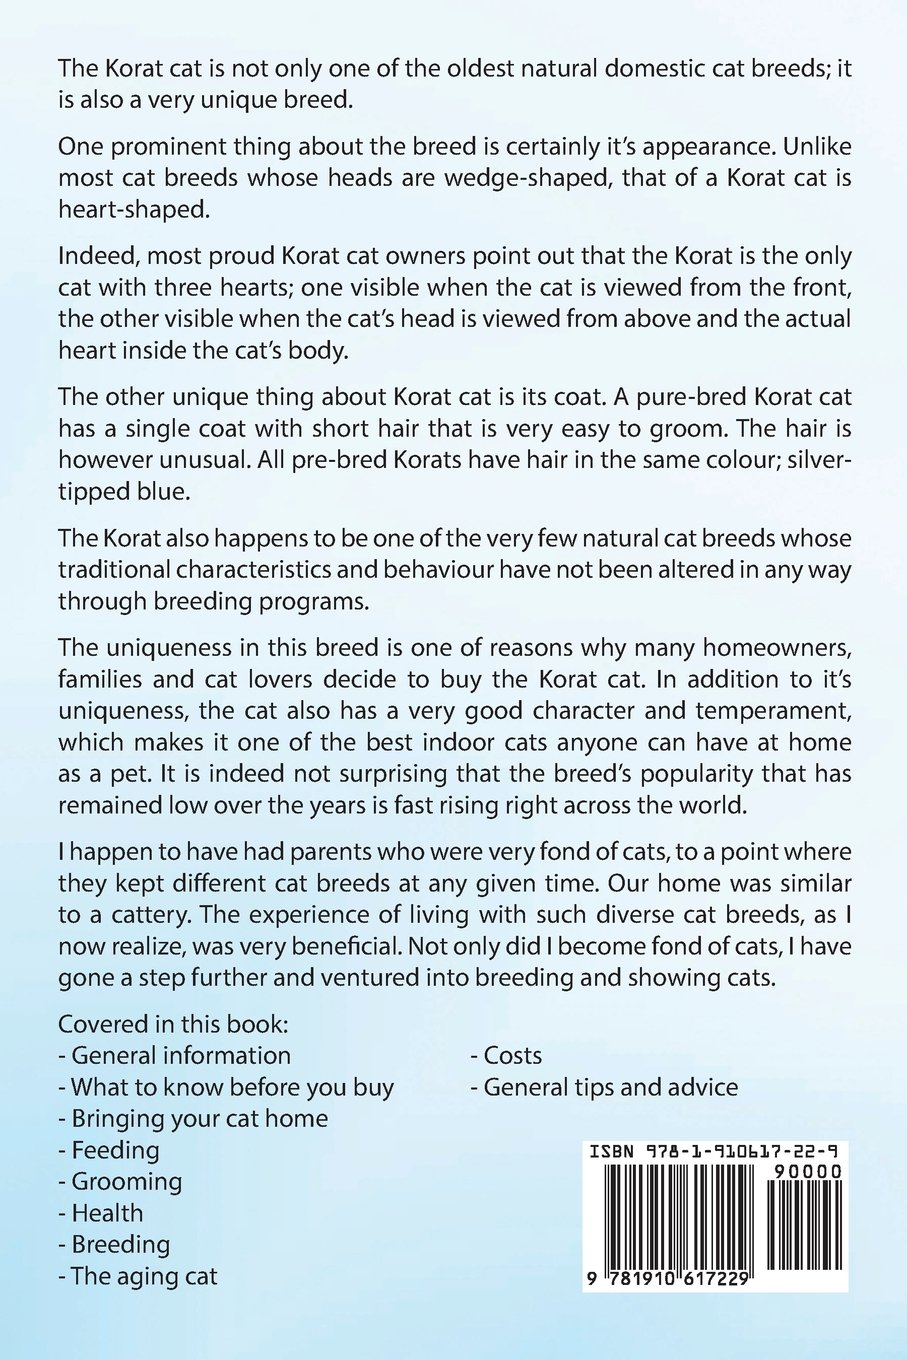 Korat Cats. Korat Cat Owners Manual. Korat Cat care, personality, grooming, health, training, costs and feeding all included.